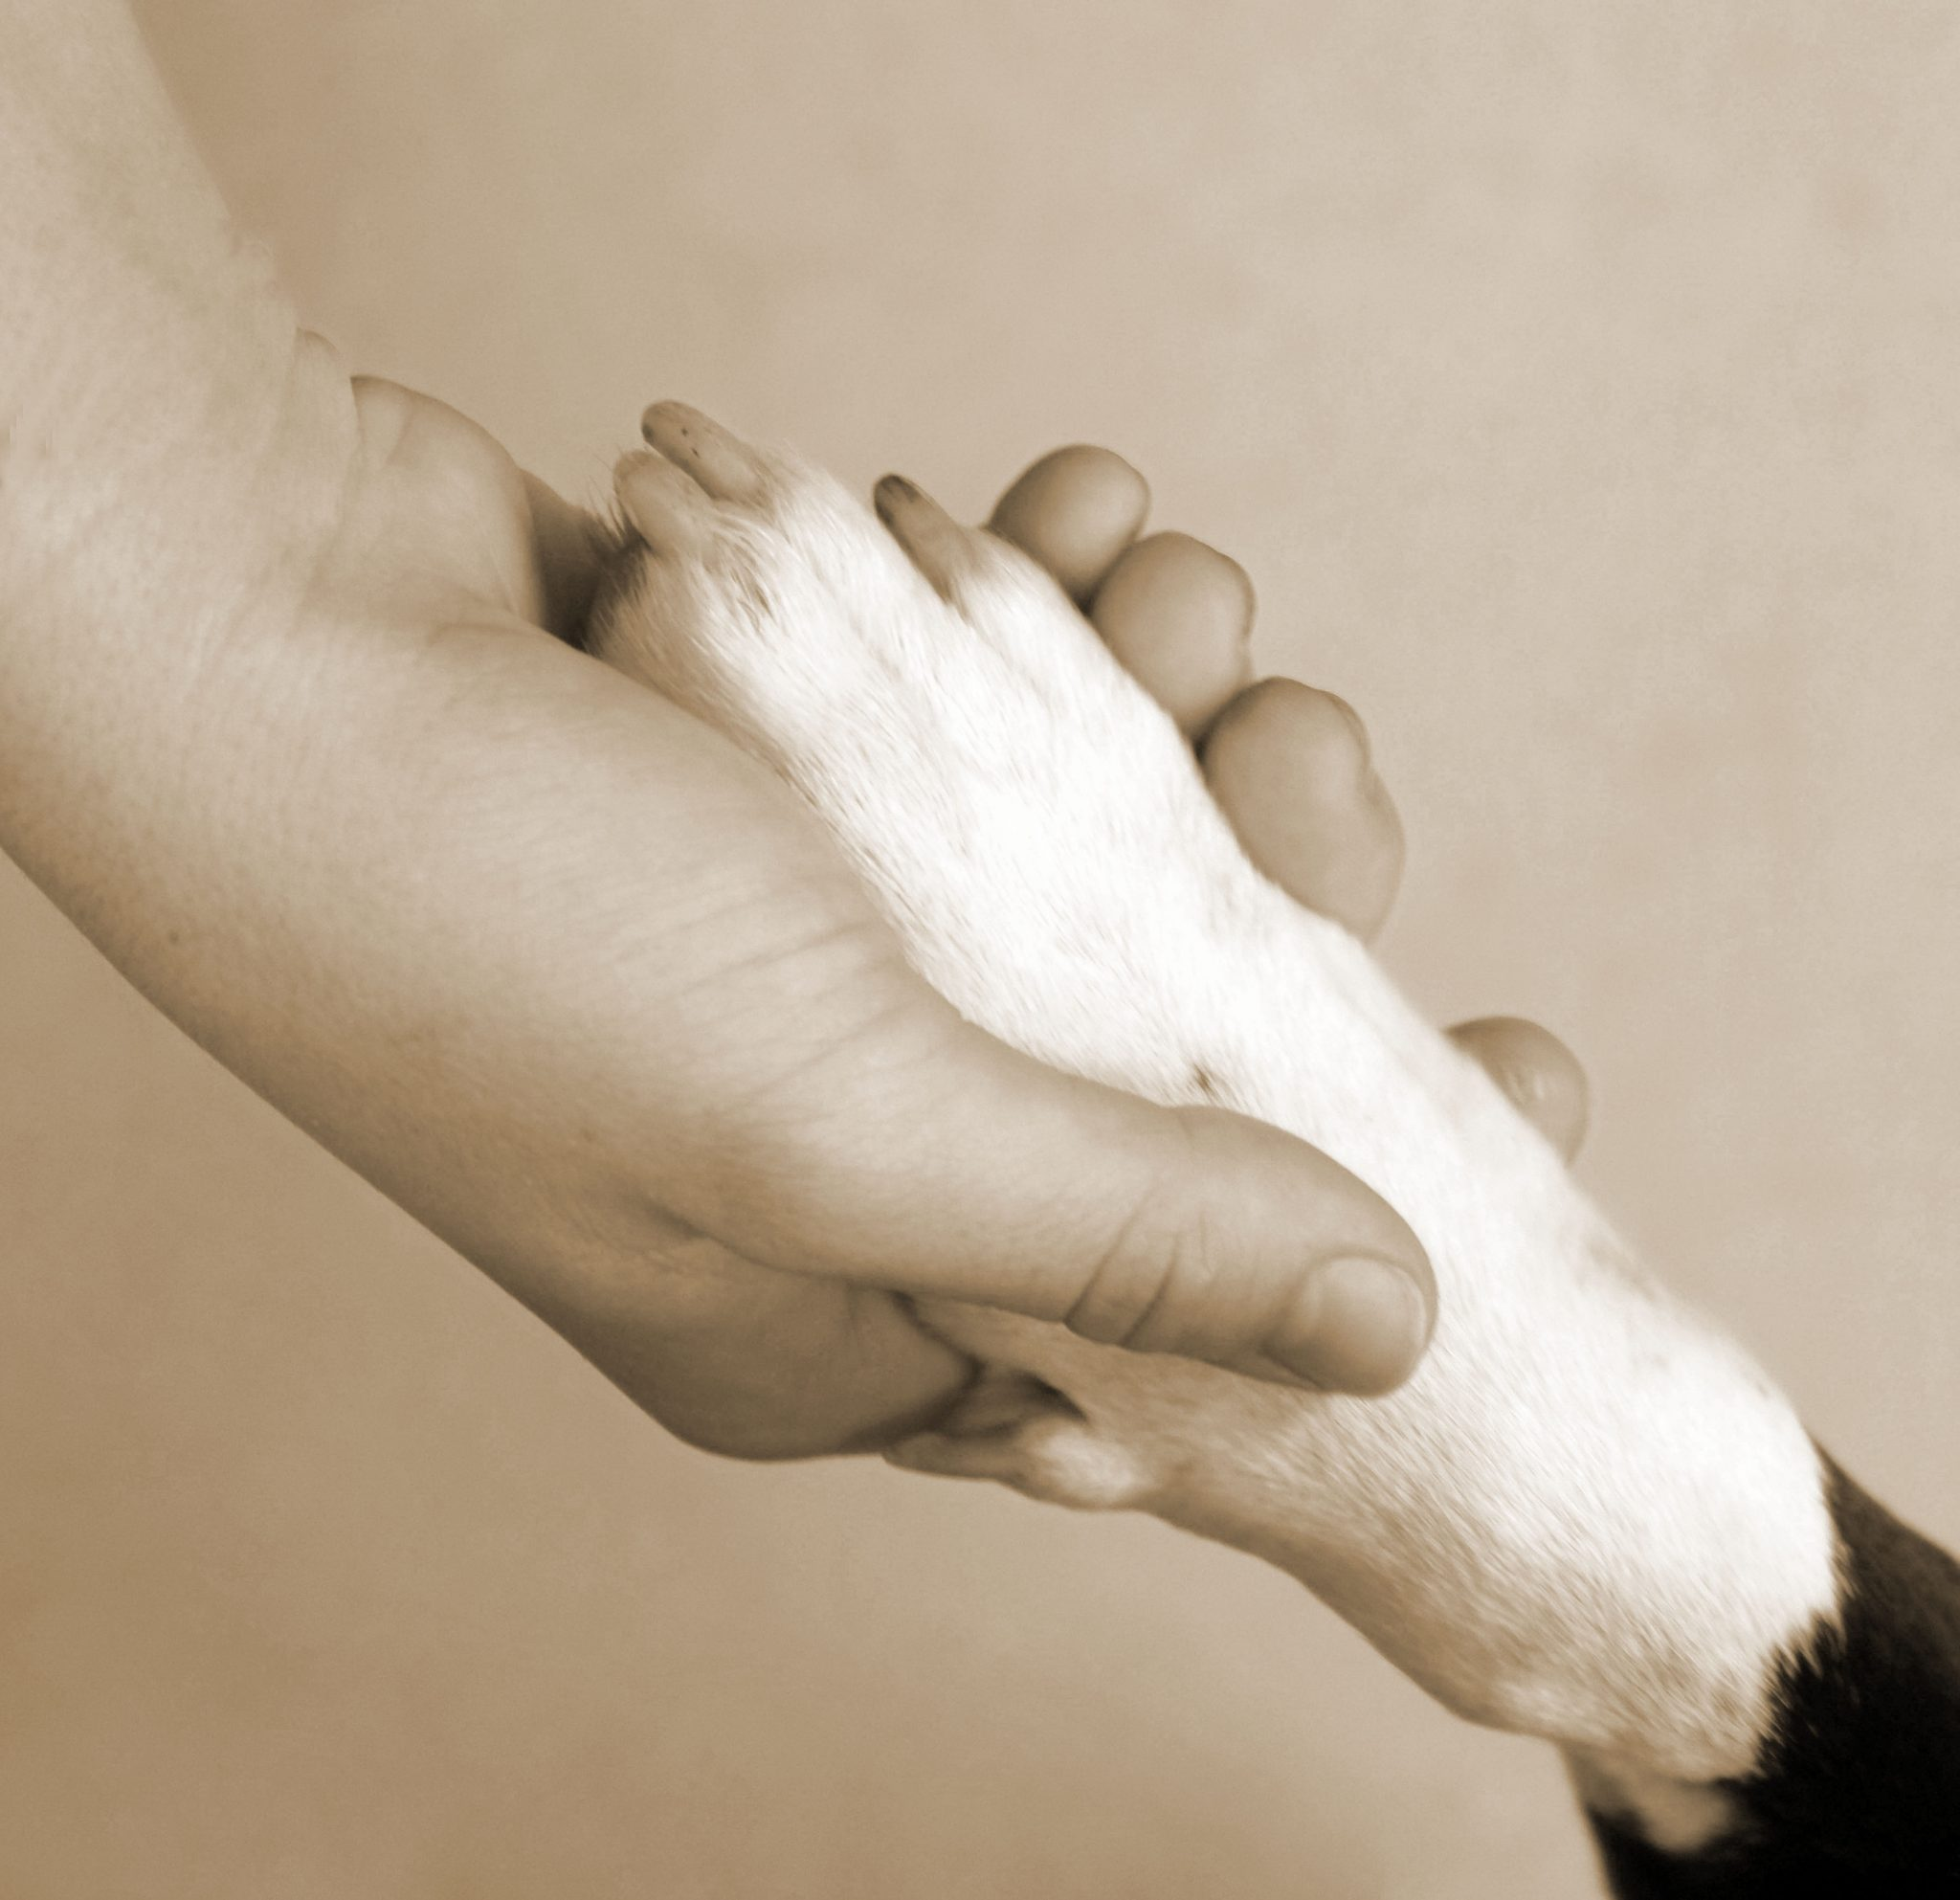 someone holding an animal's paw